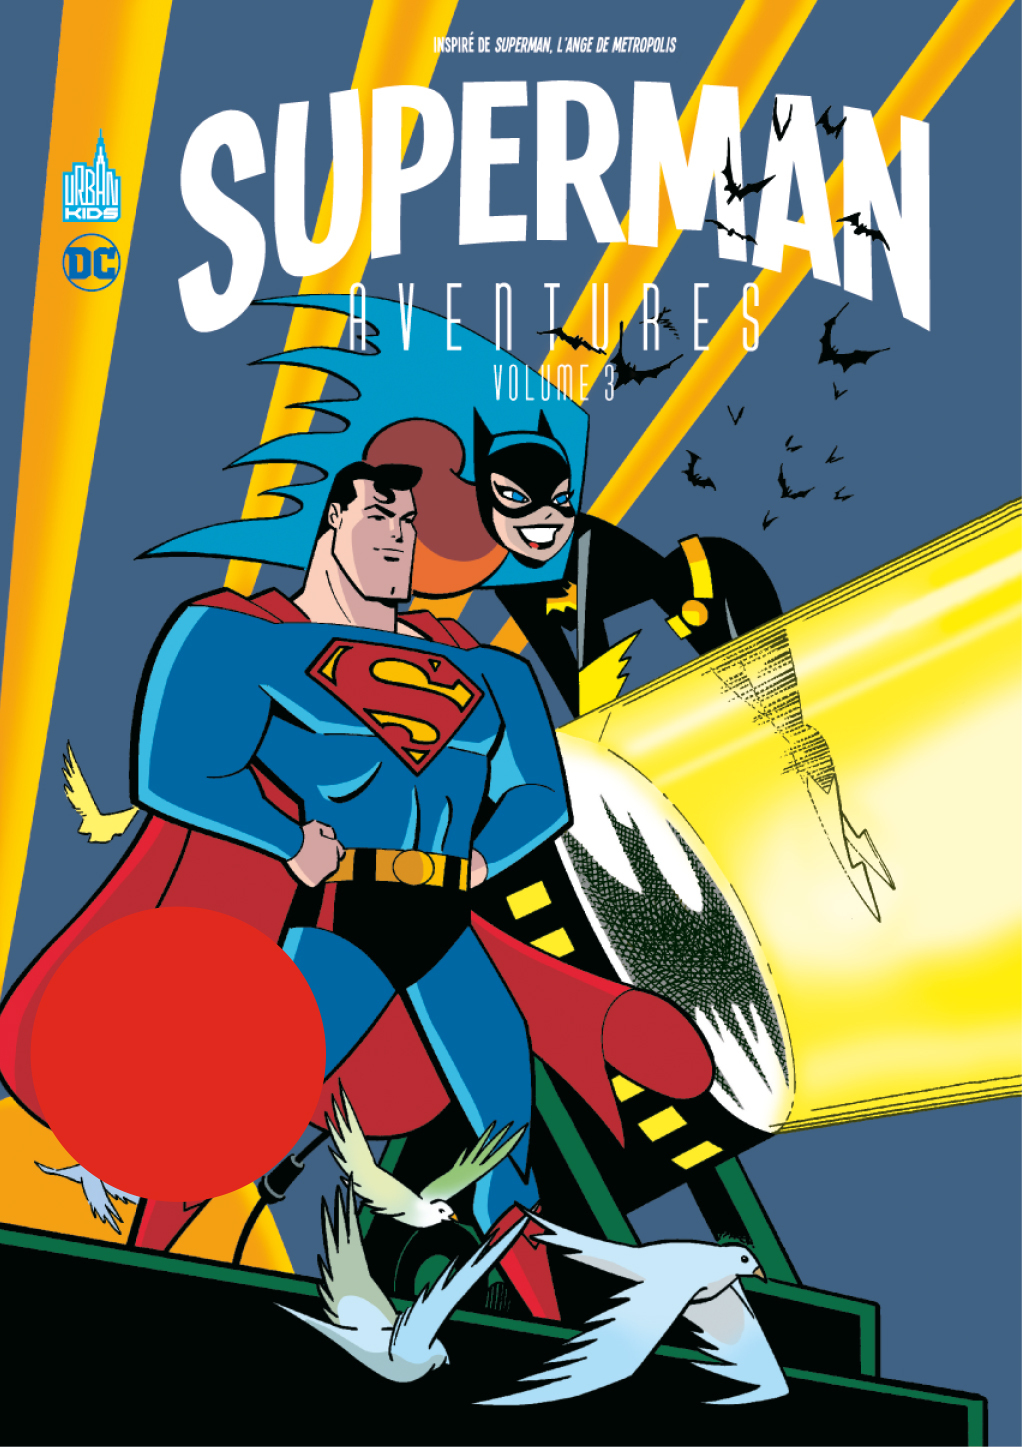 SUPERMAN AVENTURES TOME 3